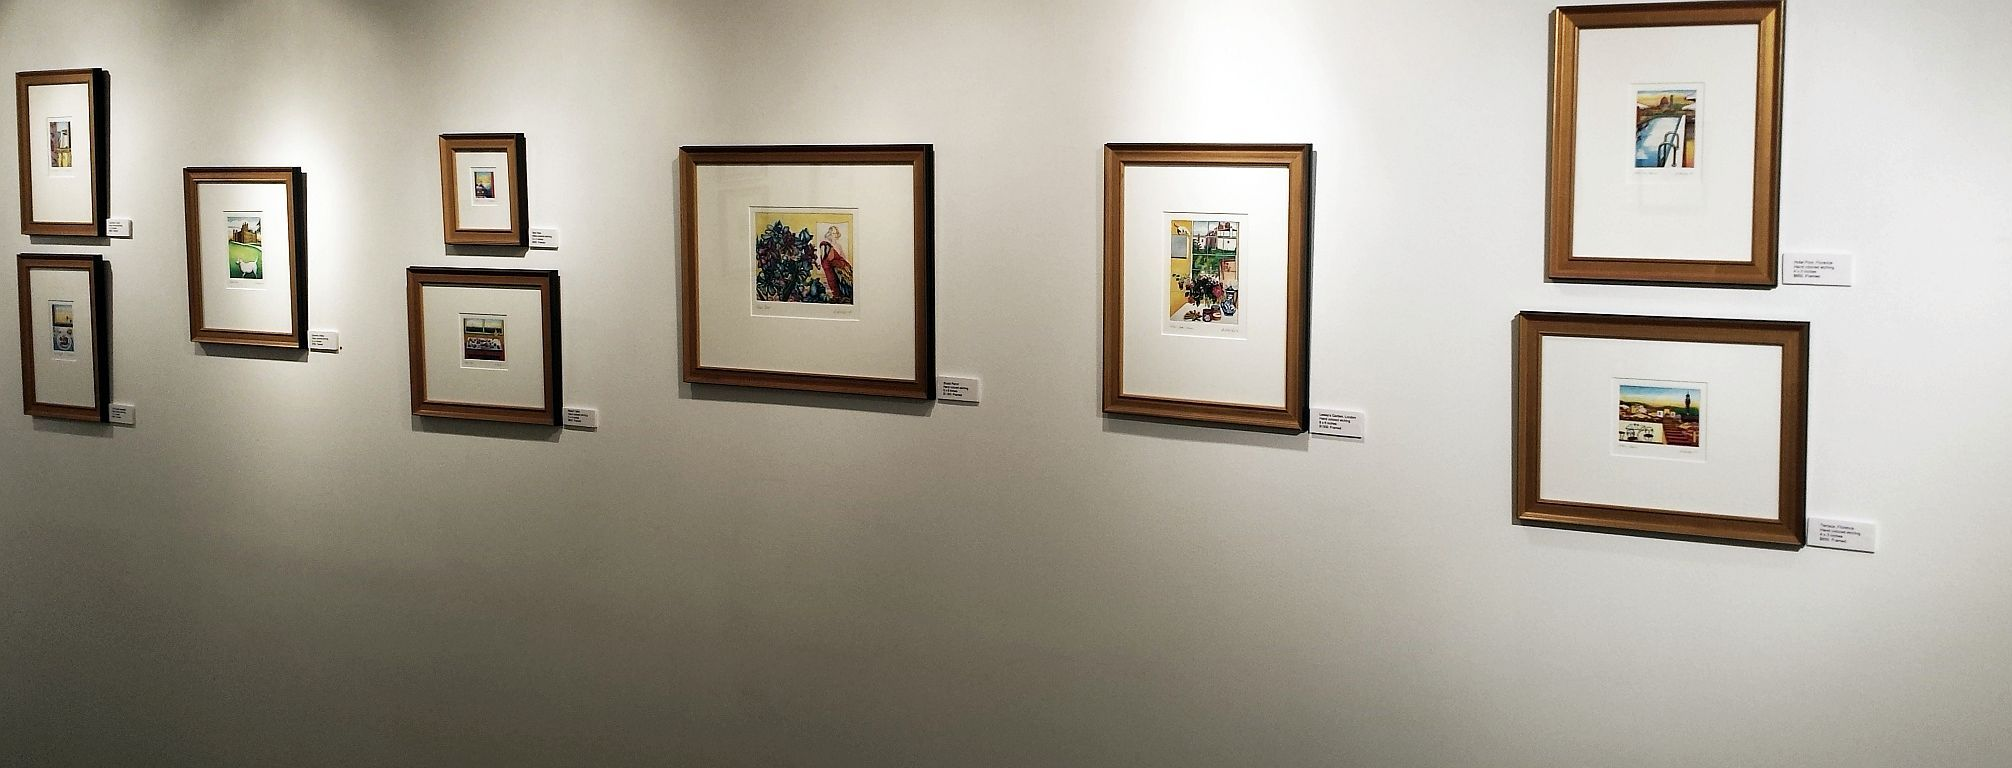 Installation view of hand colored images.